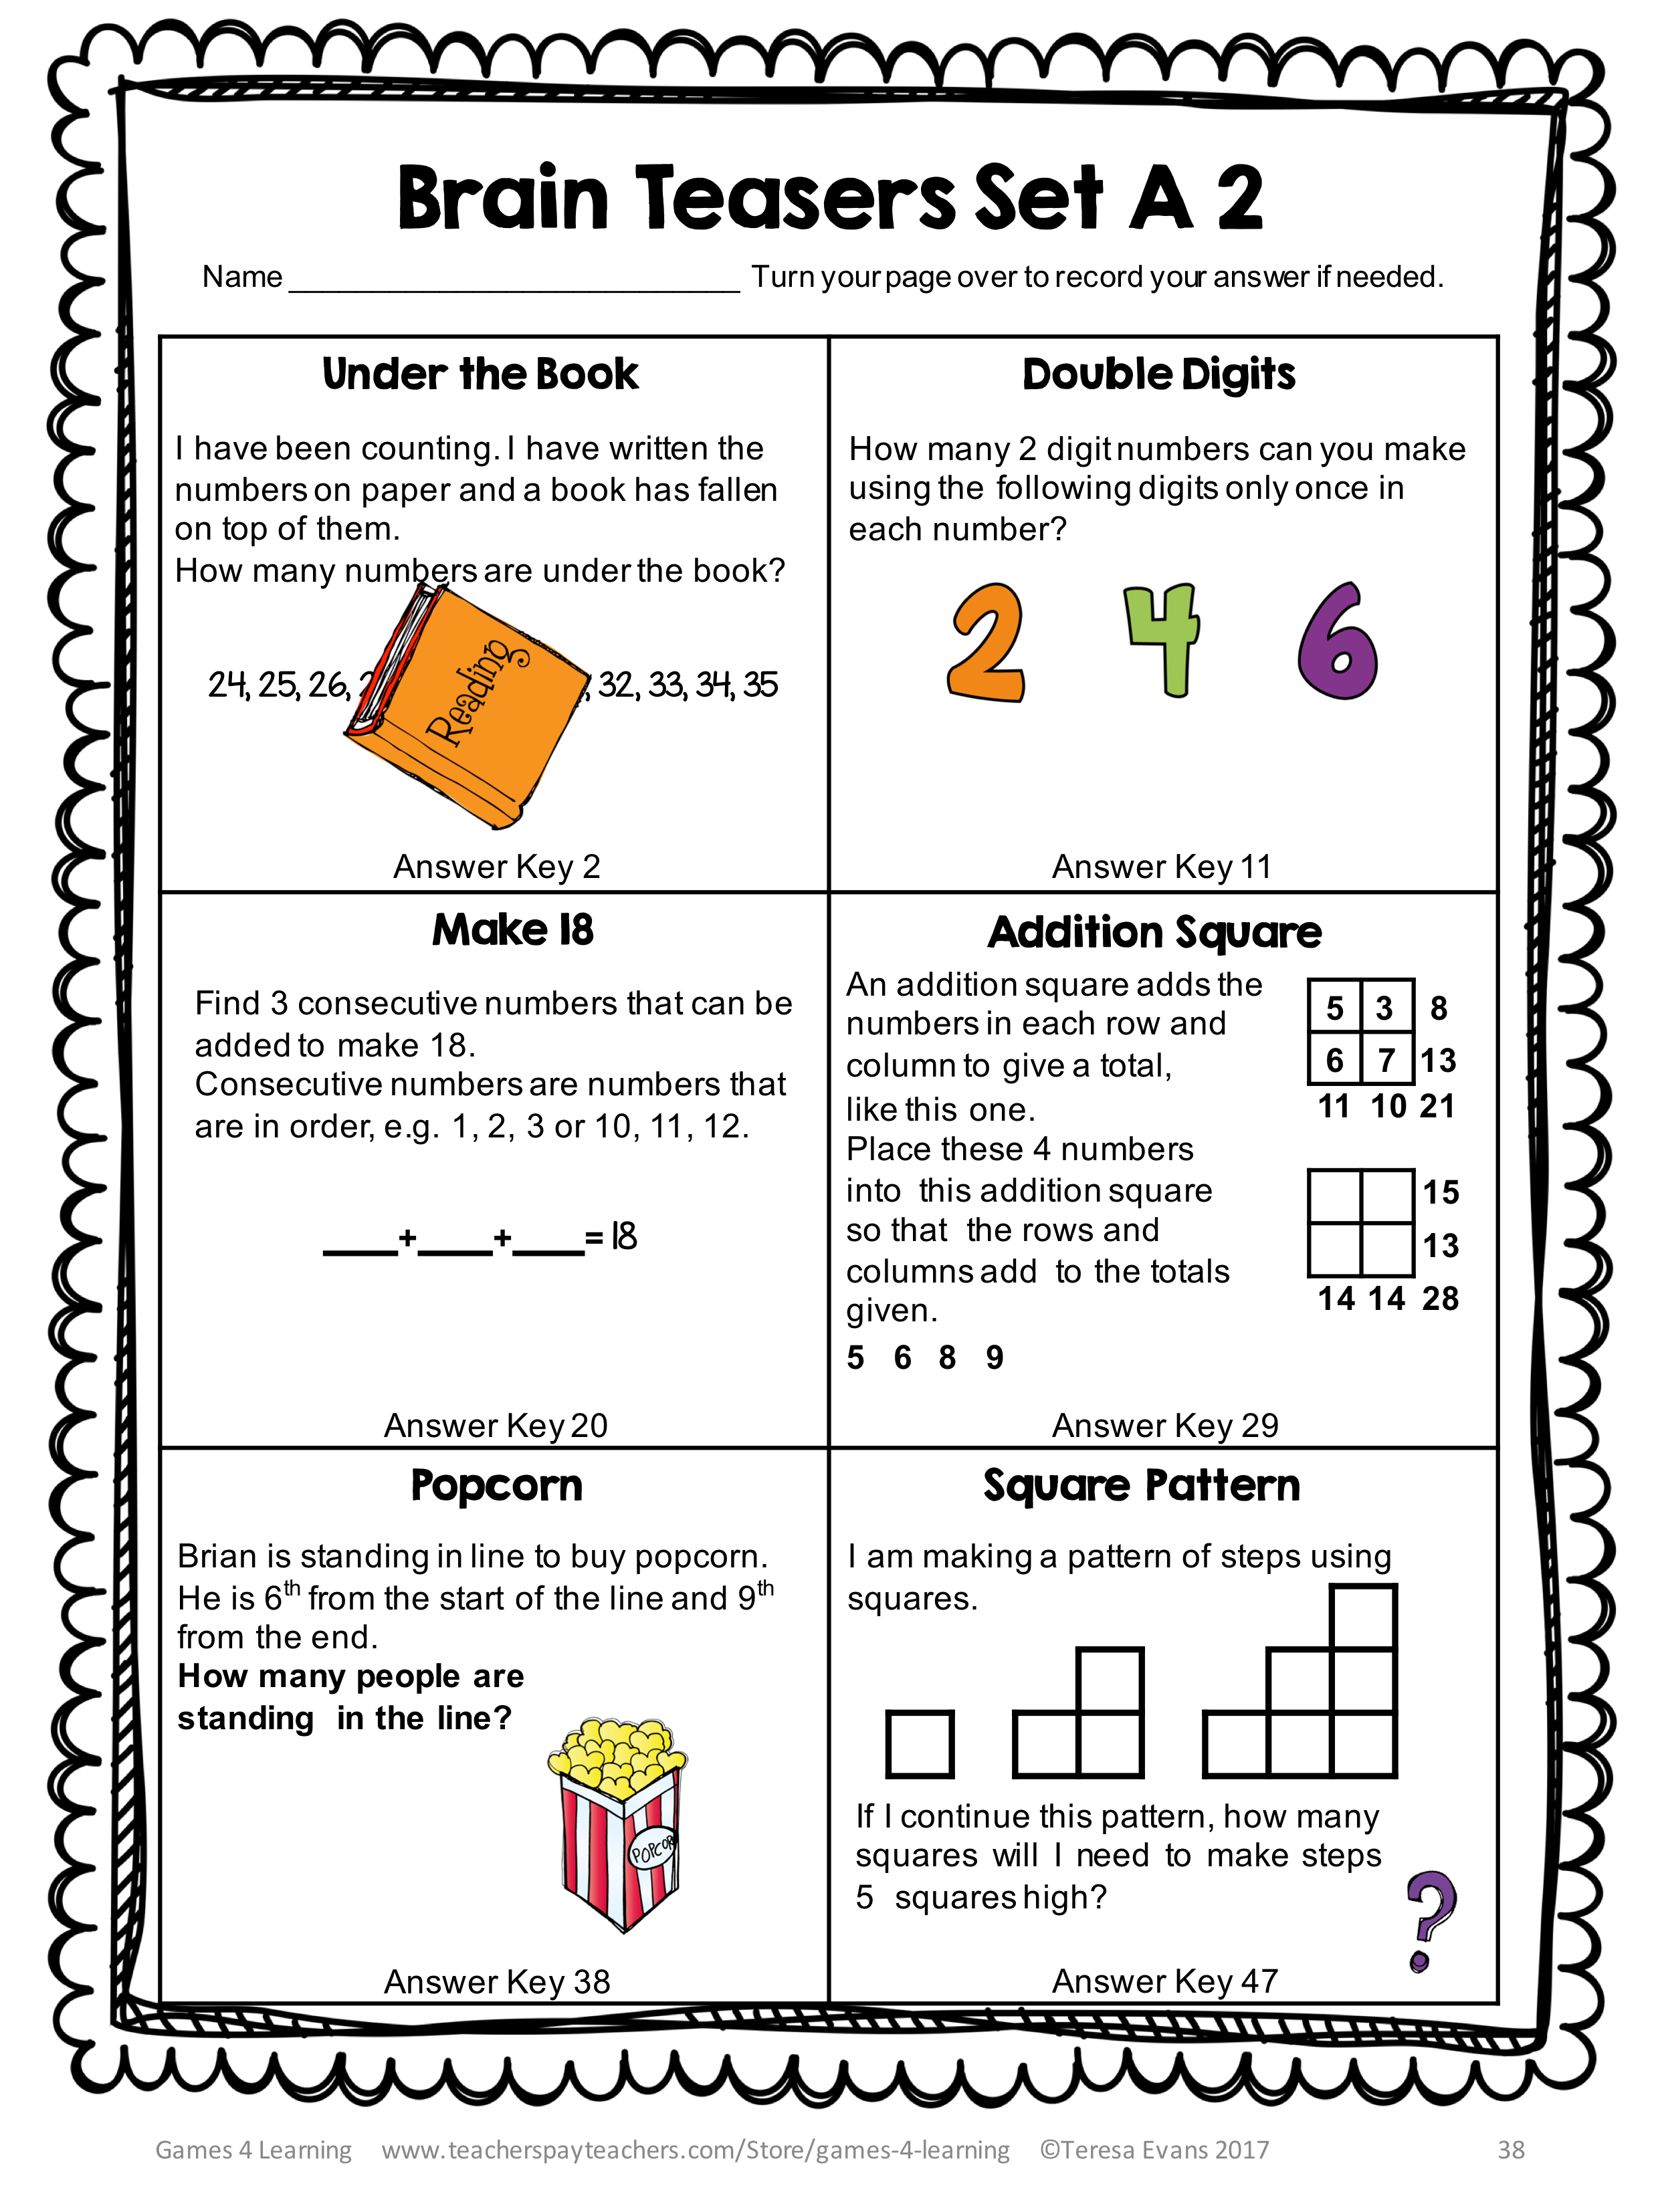 medium resolution of Printable Math Problems and Math Brain Teasers Cards from Games 4 Learning  contains 54 printable cards in large size